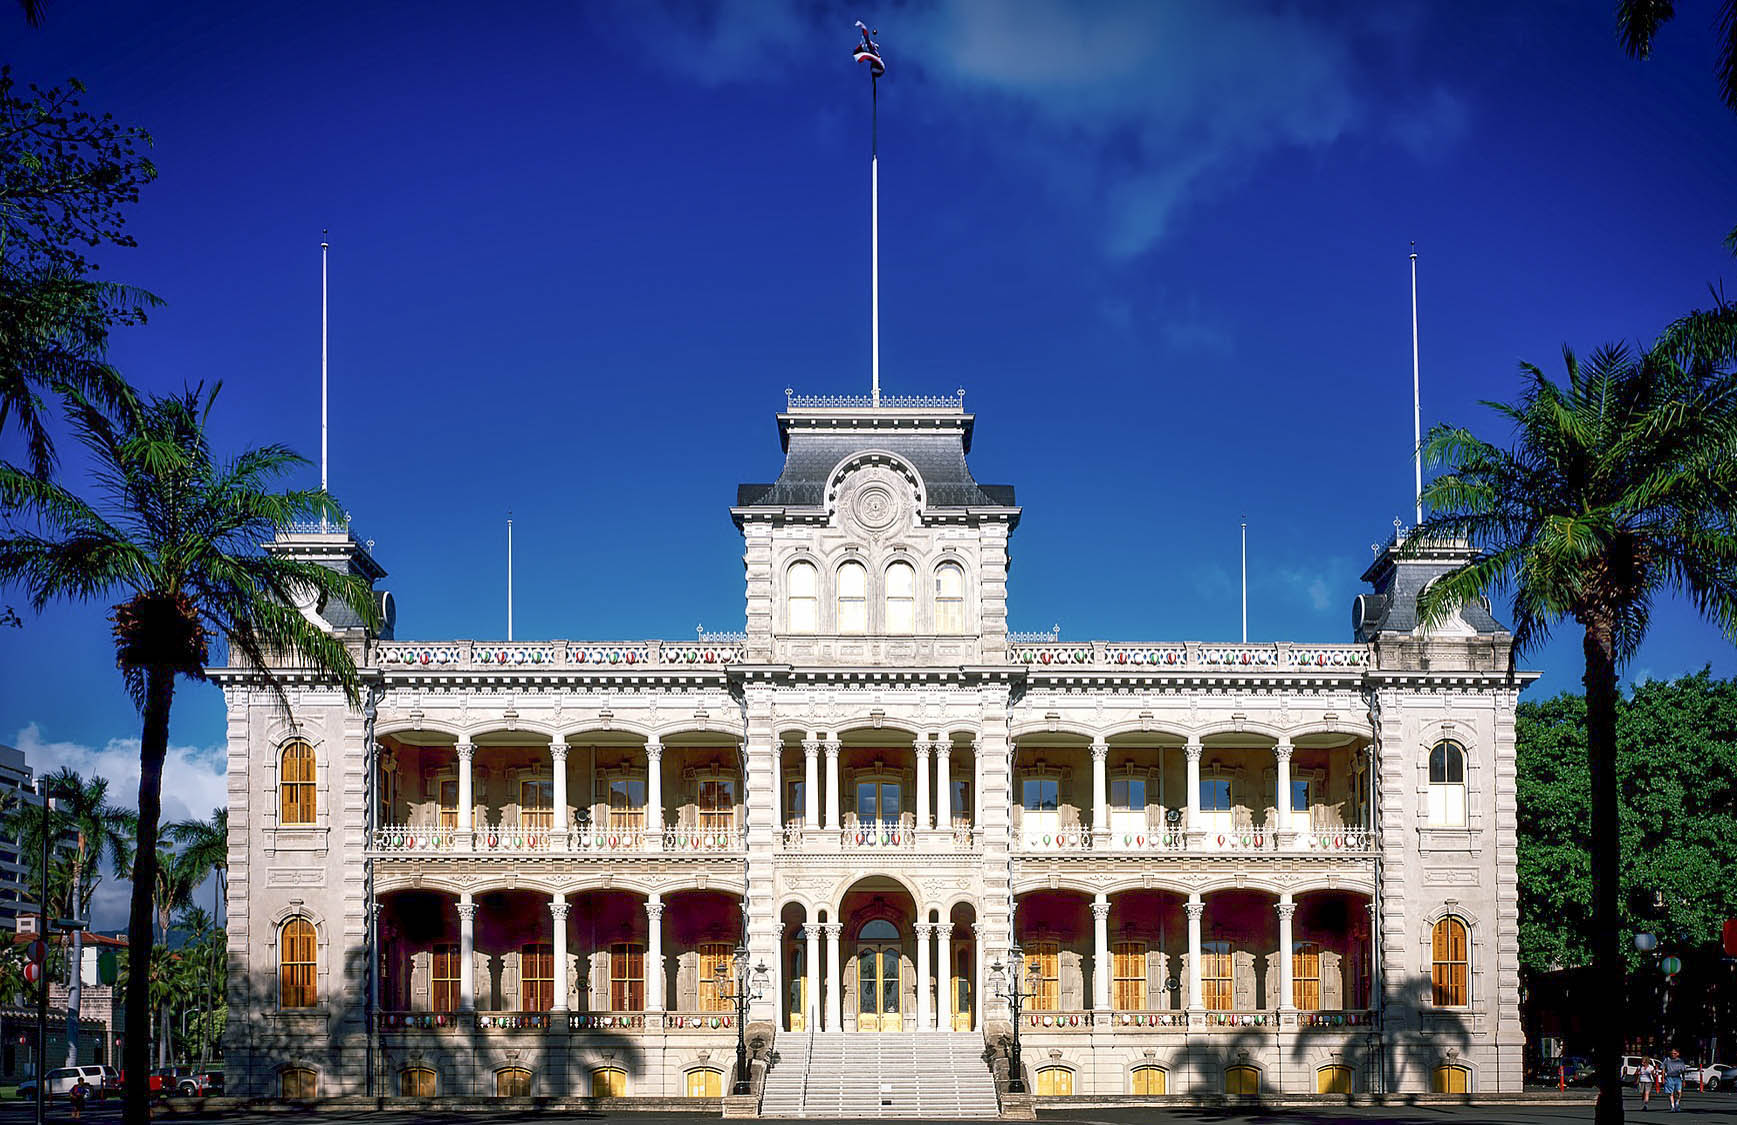 Iolani Palace, home to Hawaii's last monarchs